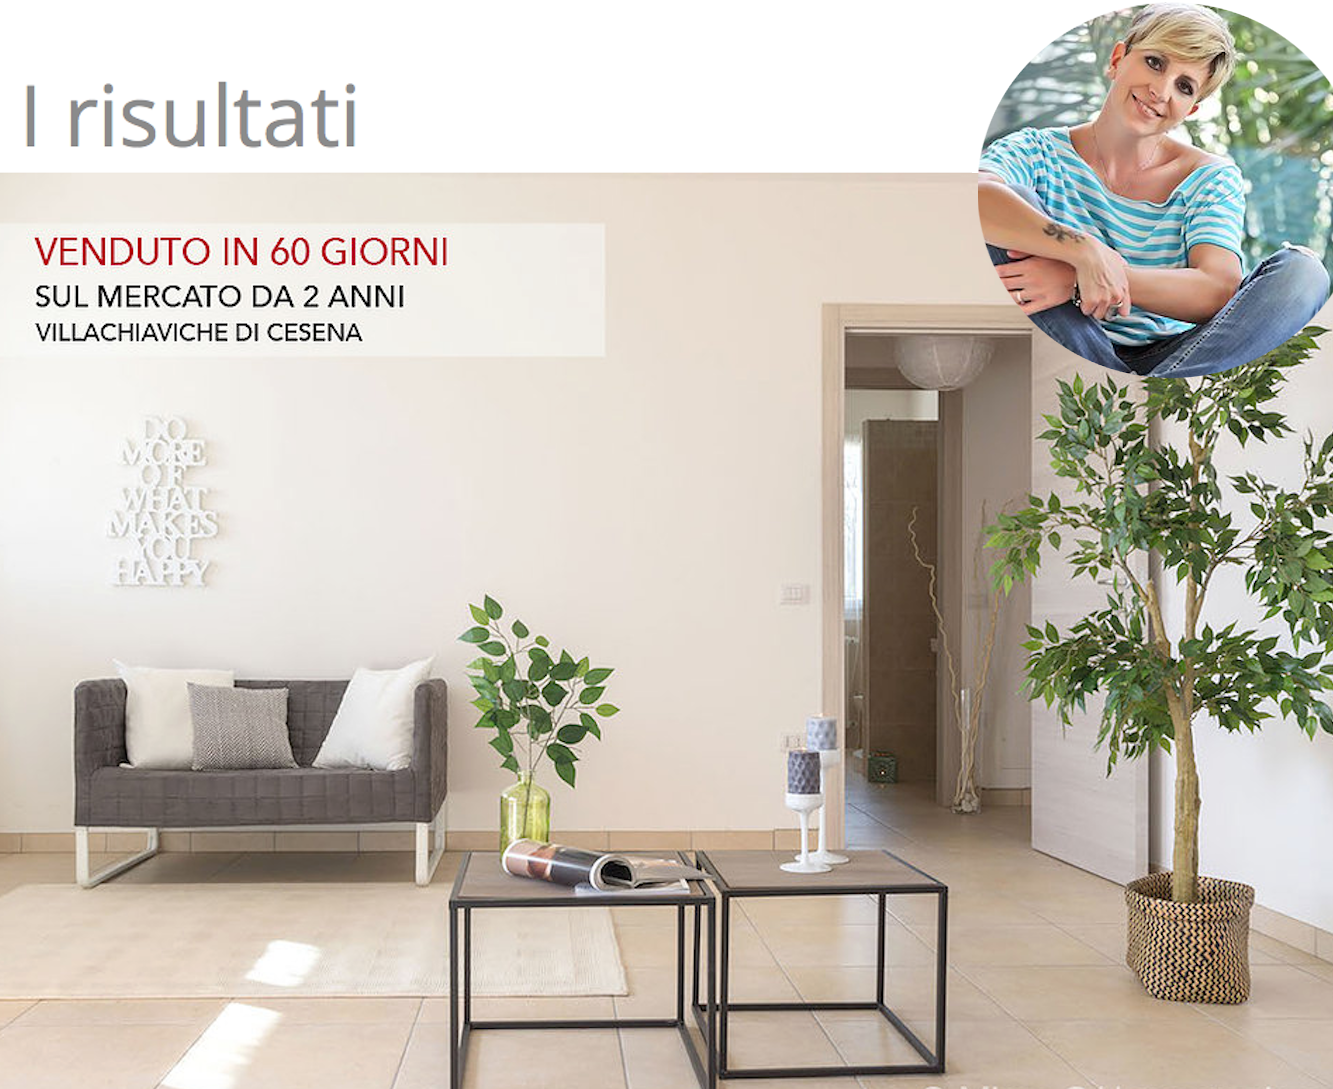 HOME STAGING ROMAGNA MIRNA CASADEI IMMOBILIARE REAL ESTATE17.png